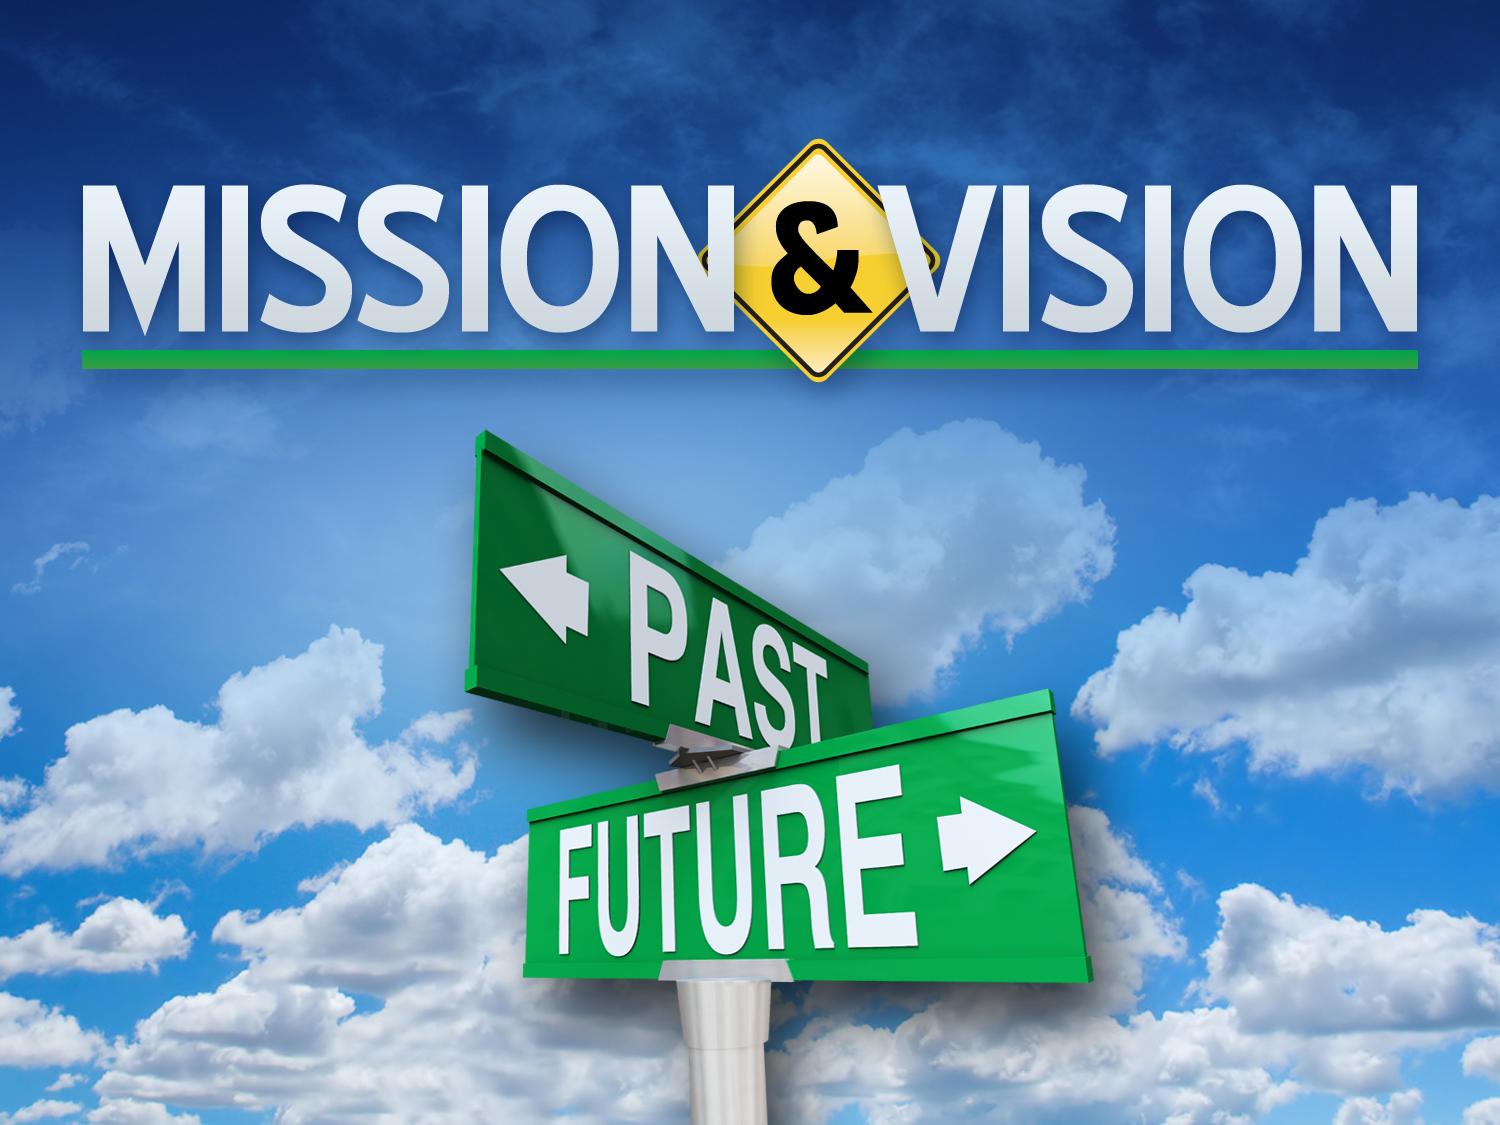 mission-and-vision-statement.jpg